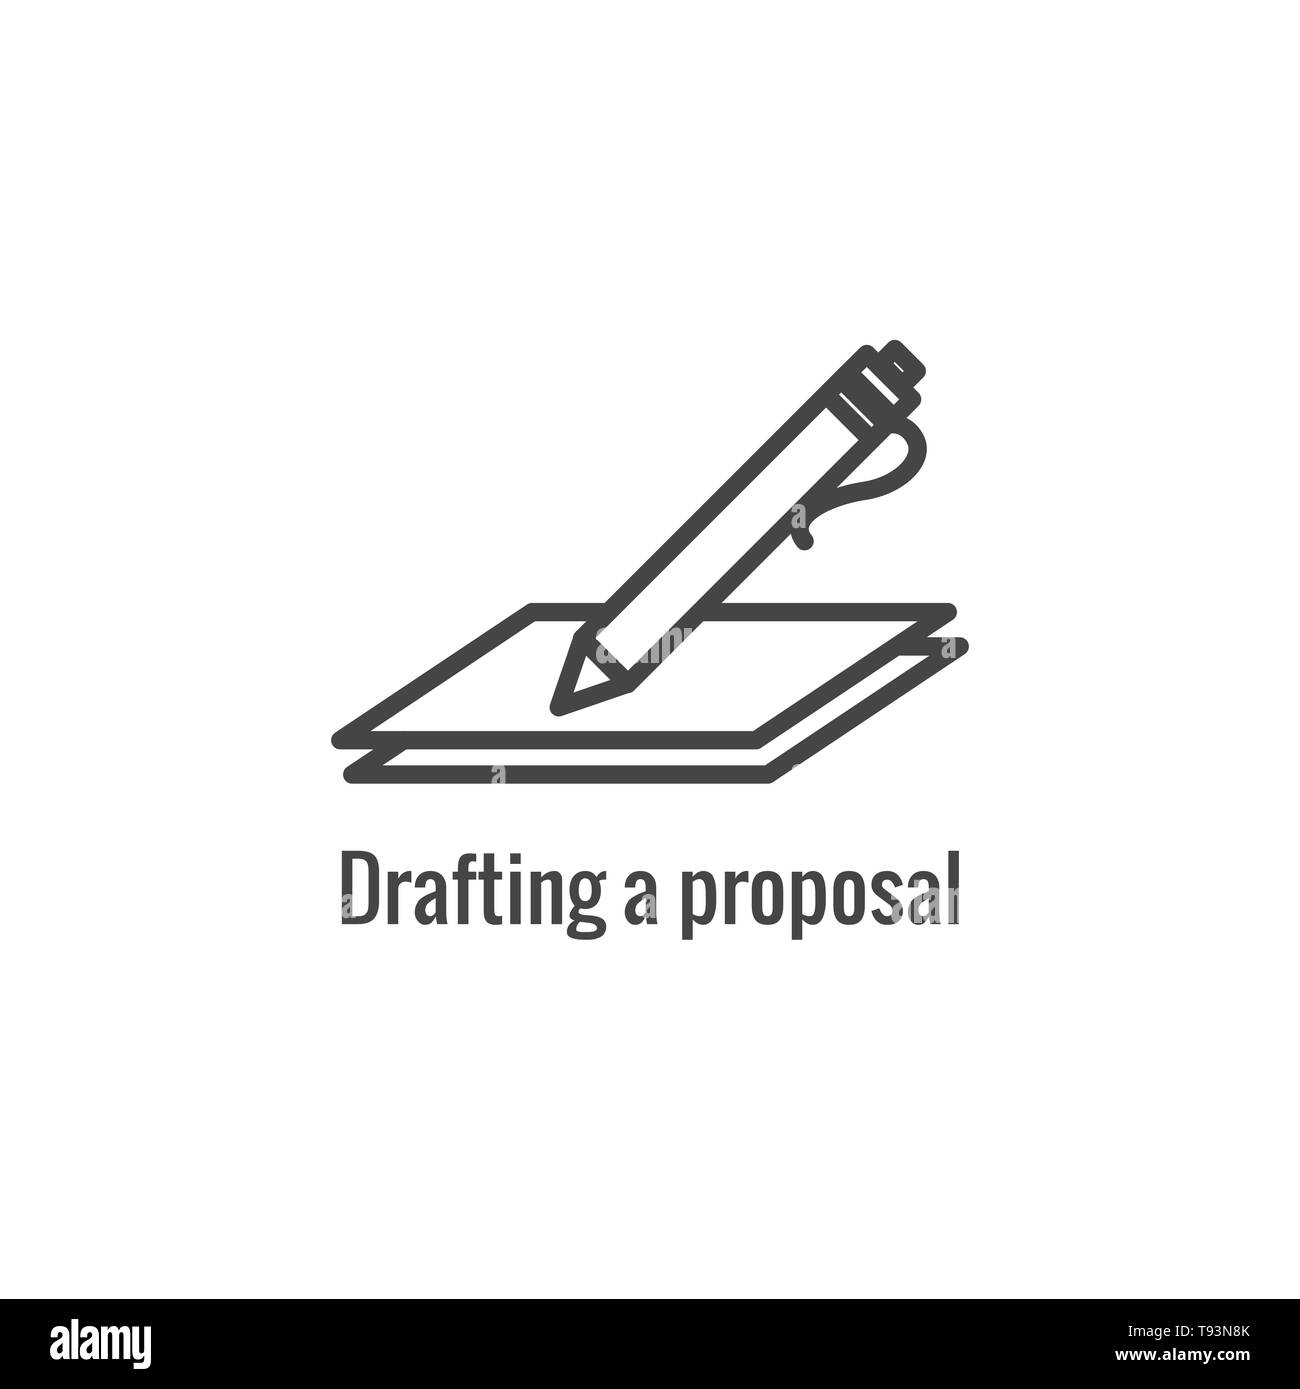 New Business Process Icon - Proposal Draft phase - Stock Vector